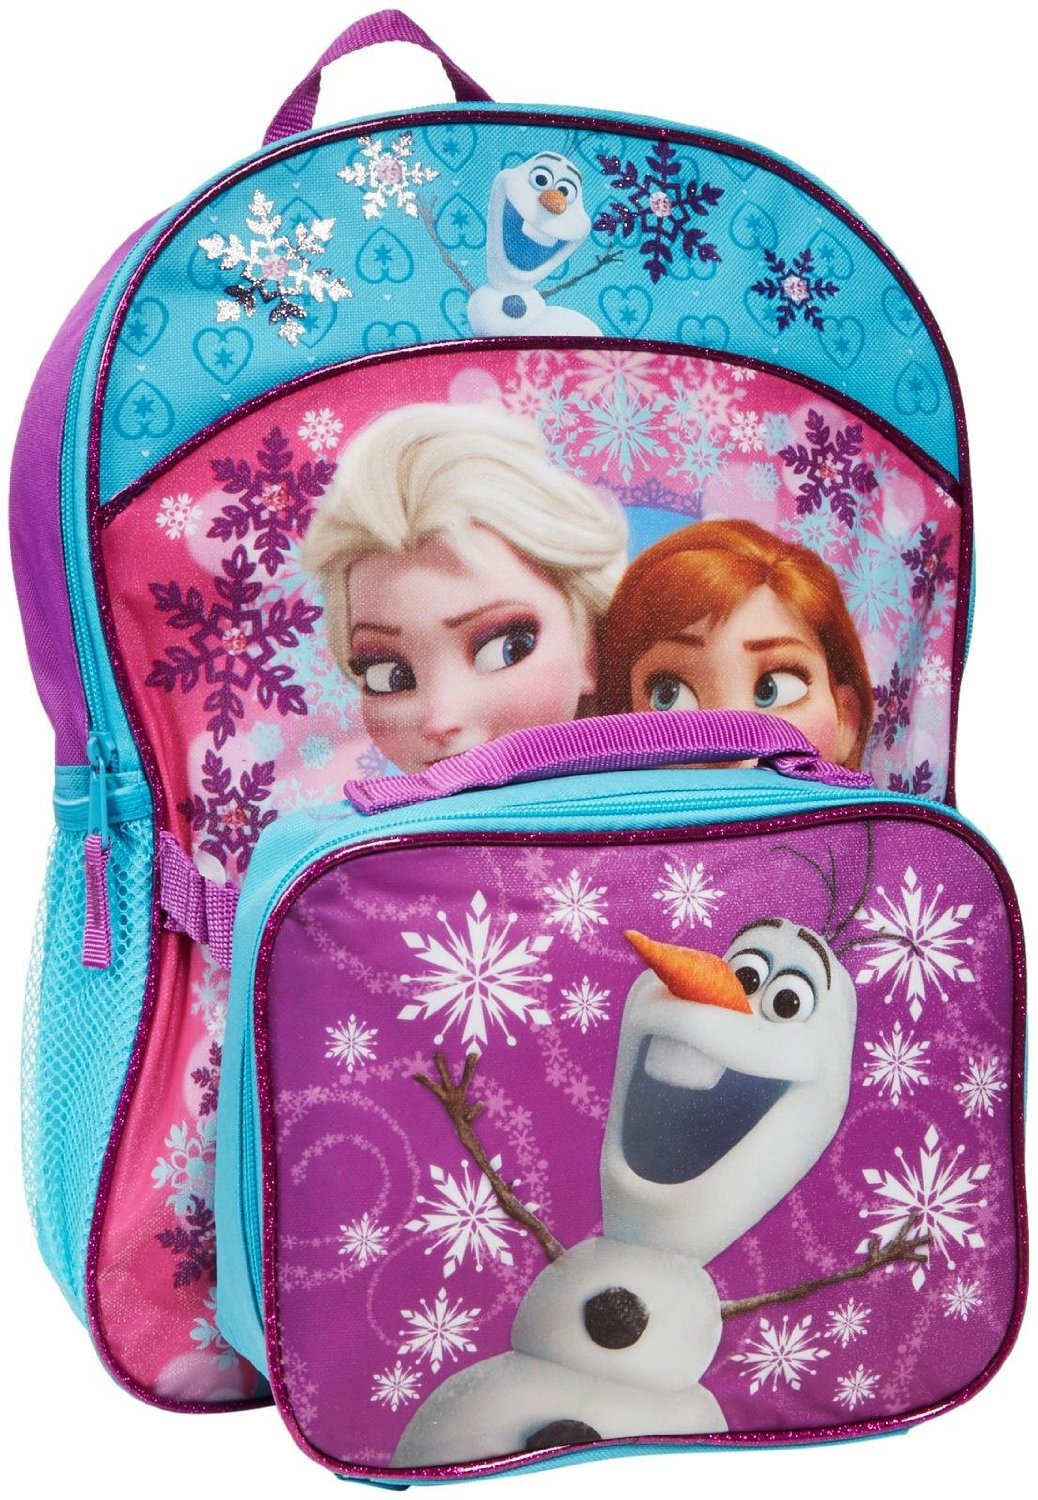 Disney Frozen Backpack with Matching Lunch Kit 526daa5602d3